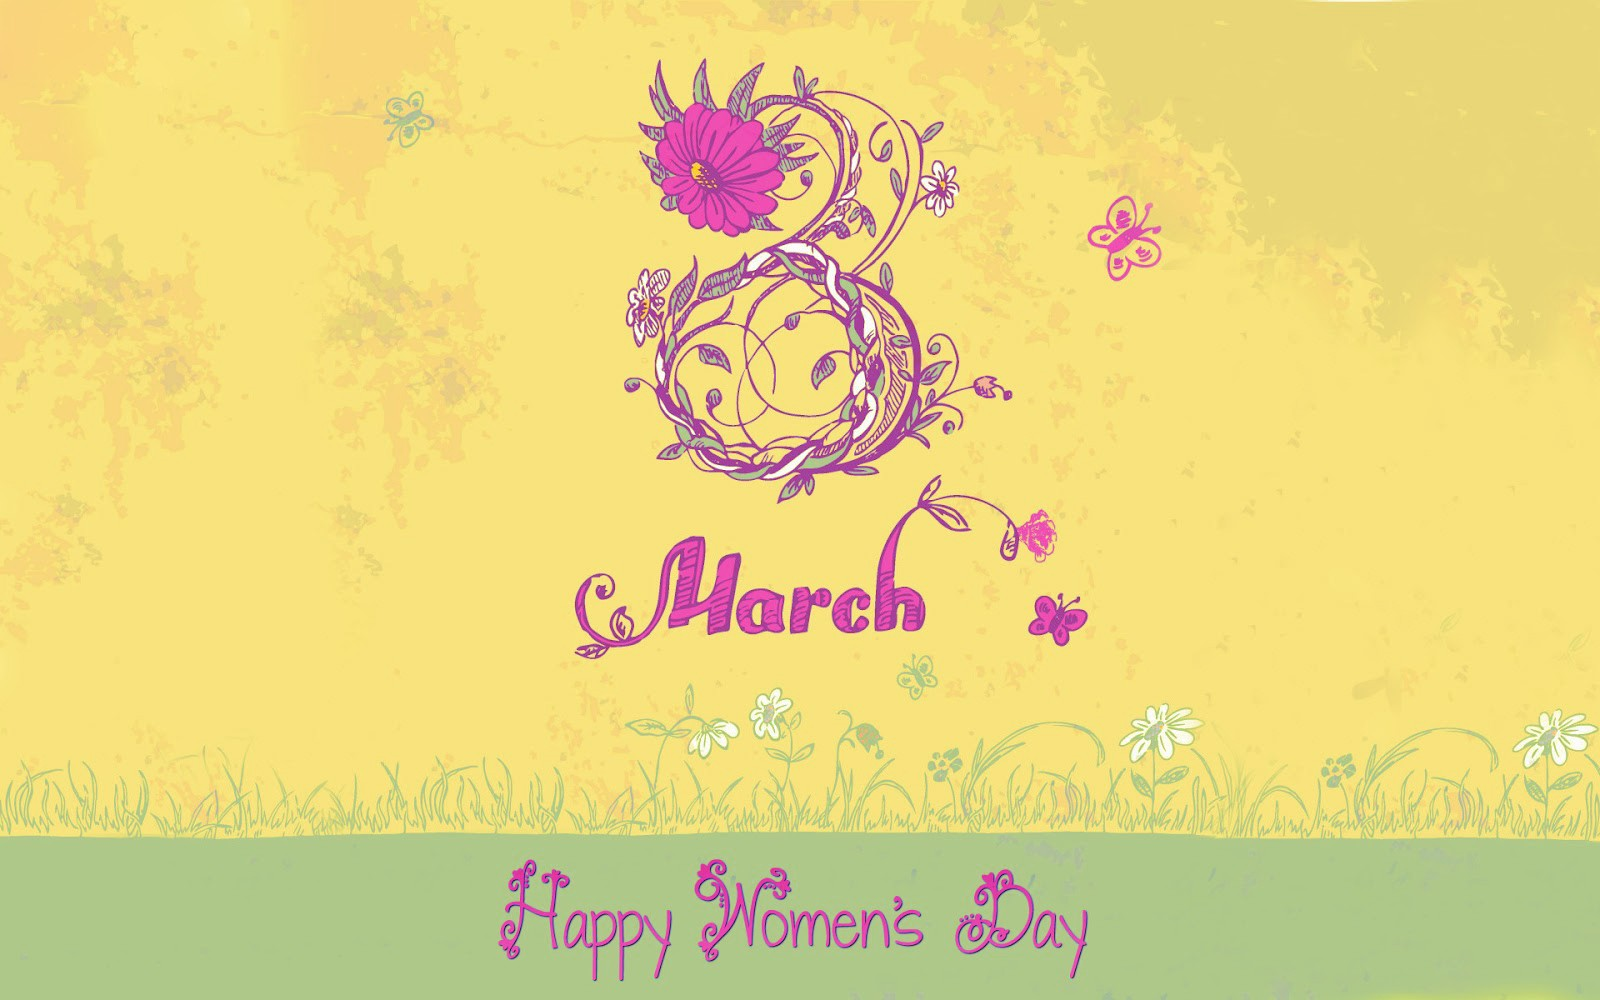 8th March - Women's Day